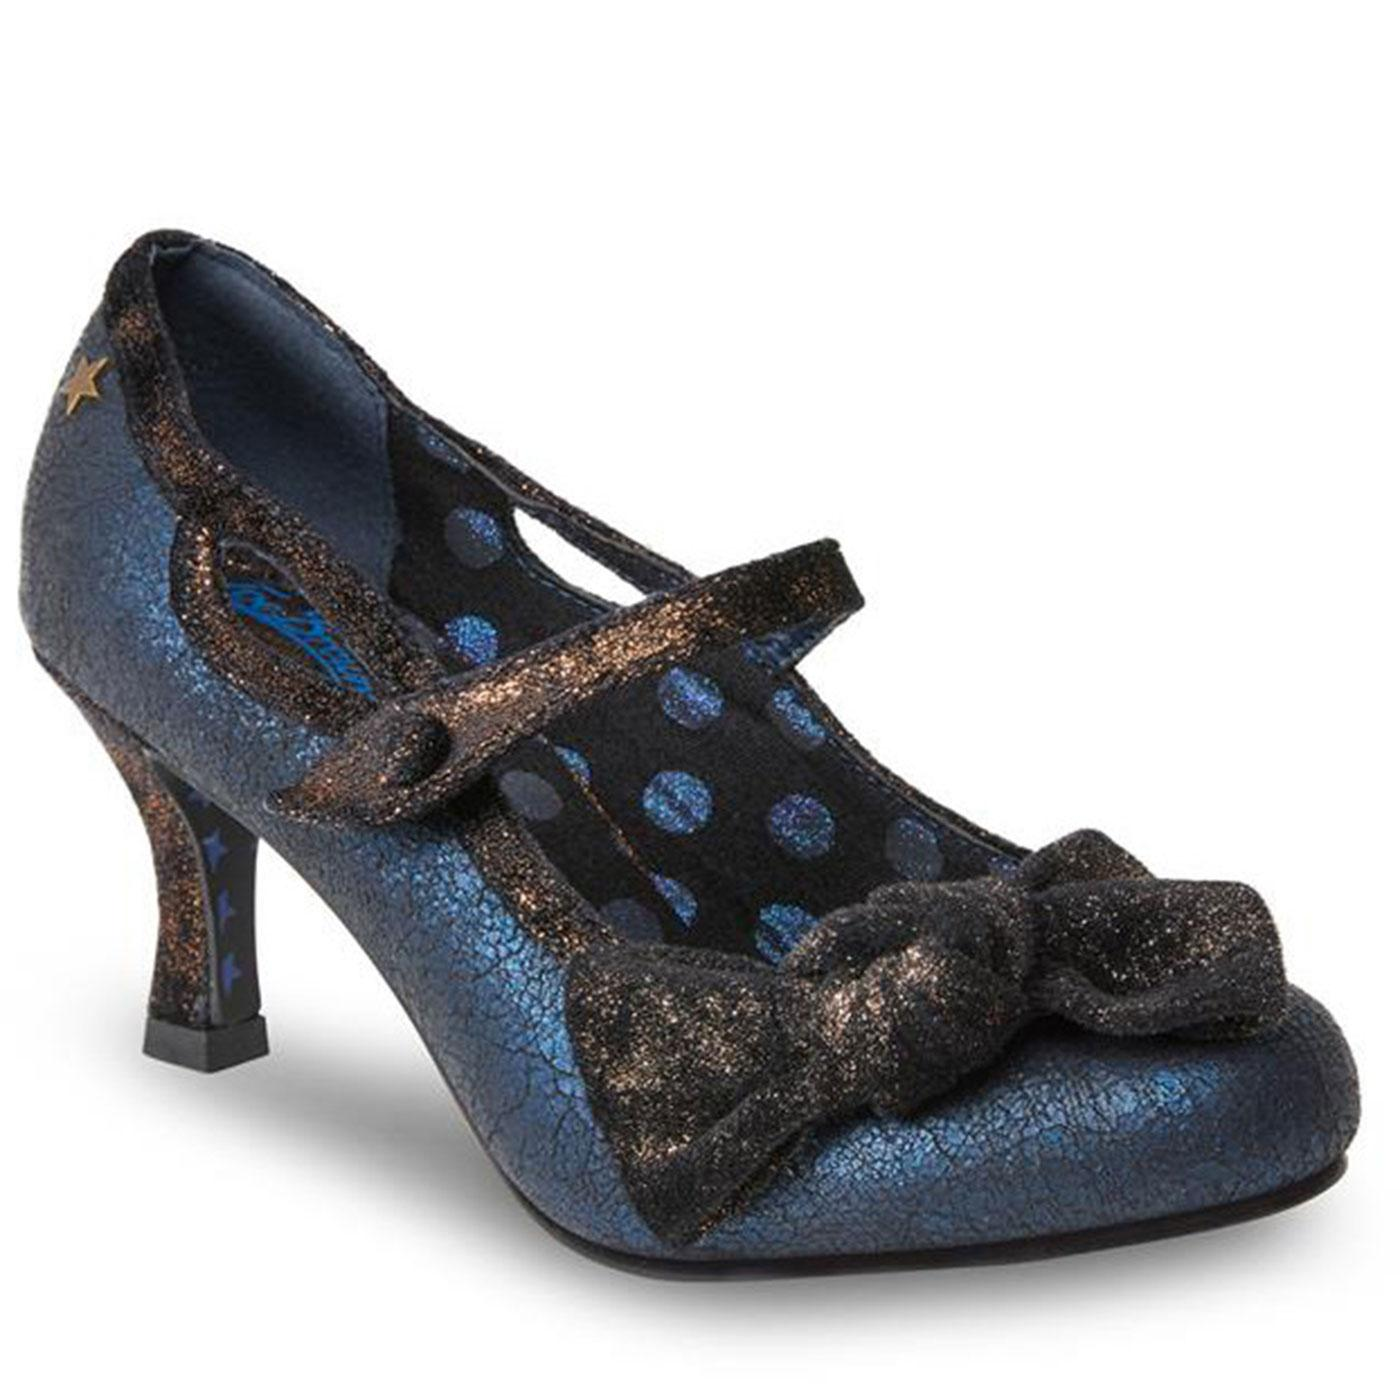 Jezabel JOE BROWNS Cracked Metallic Bow Heels Blue